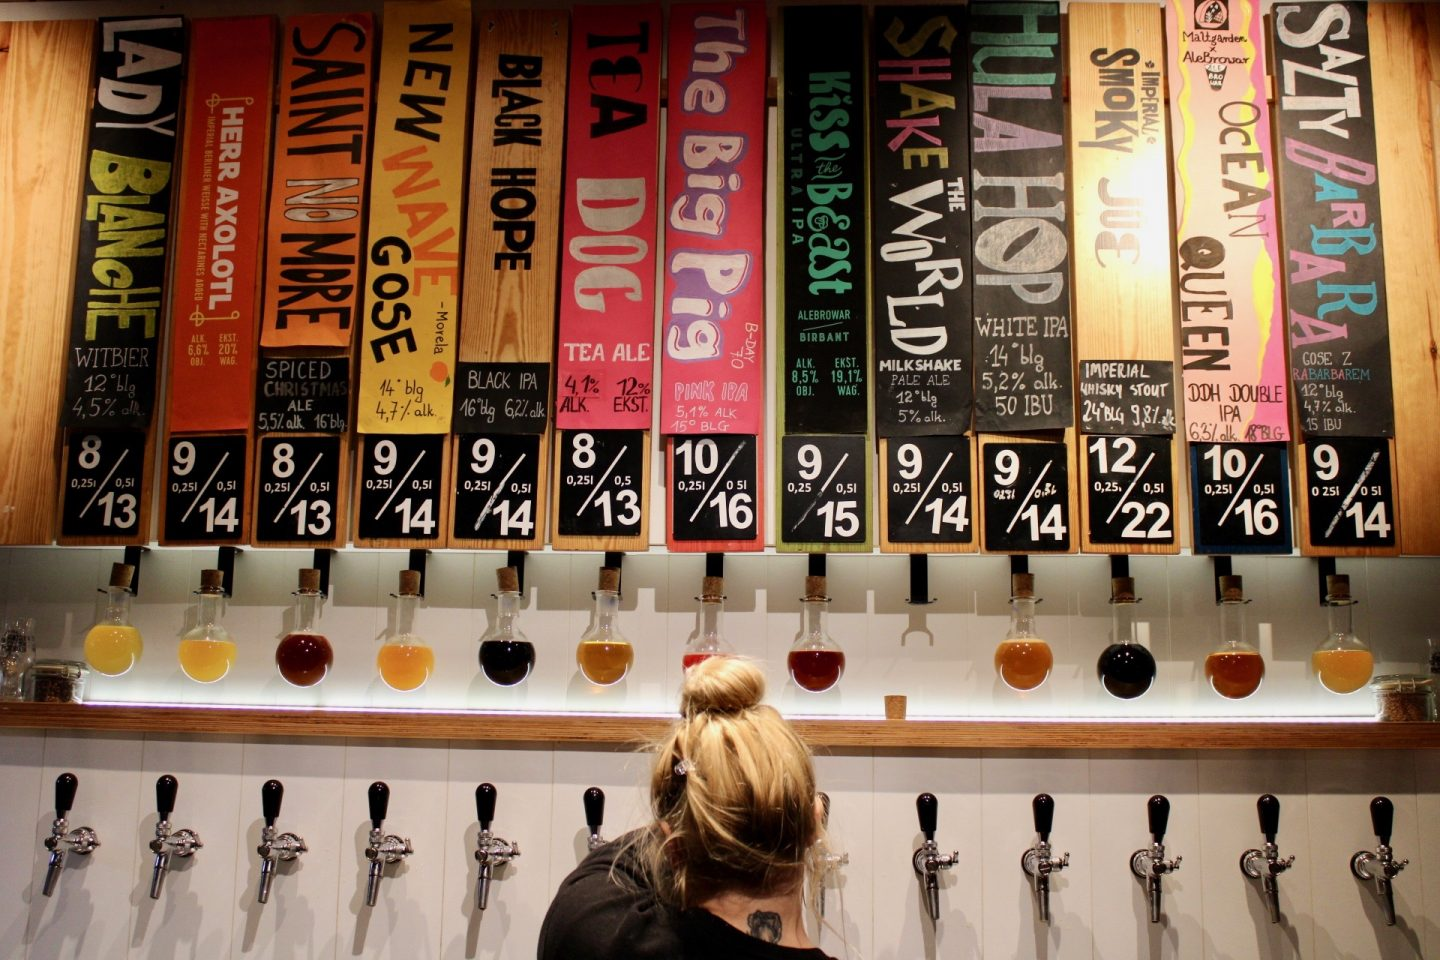 best bars in wroclaw, craft beer bars in Wroclaw: a selection of beer taps and a person pouring beer from one of them